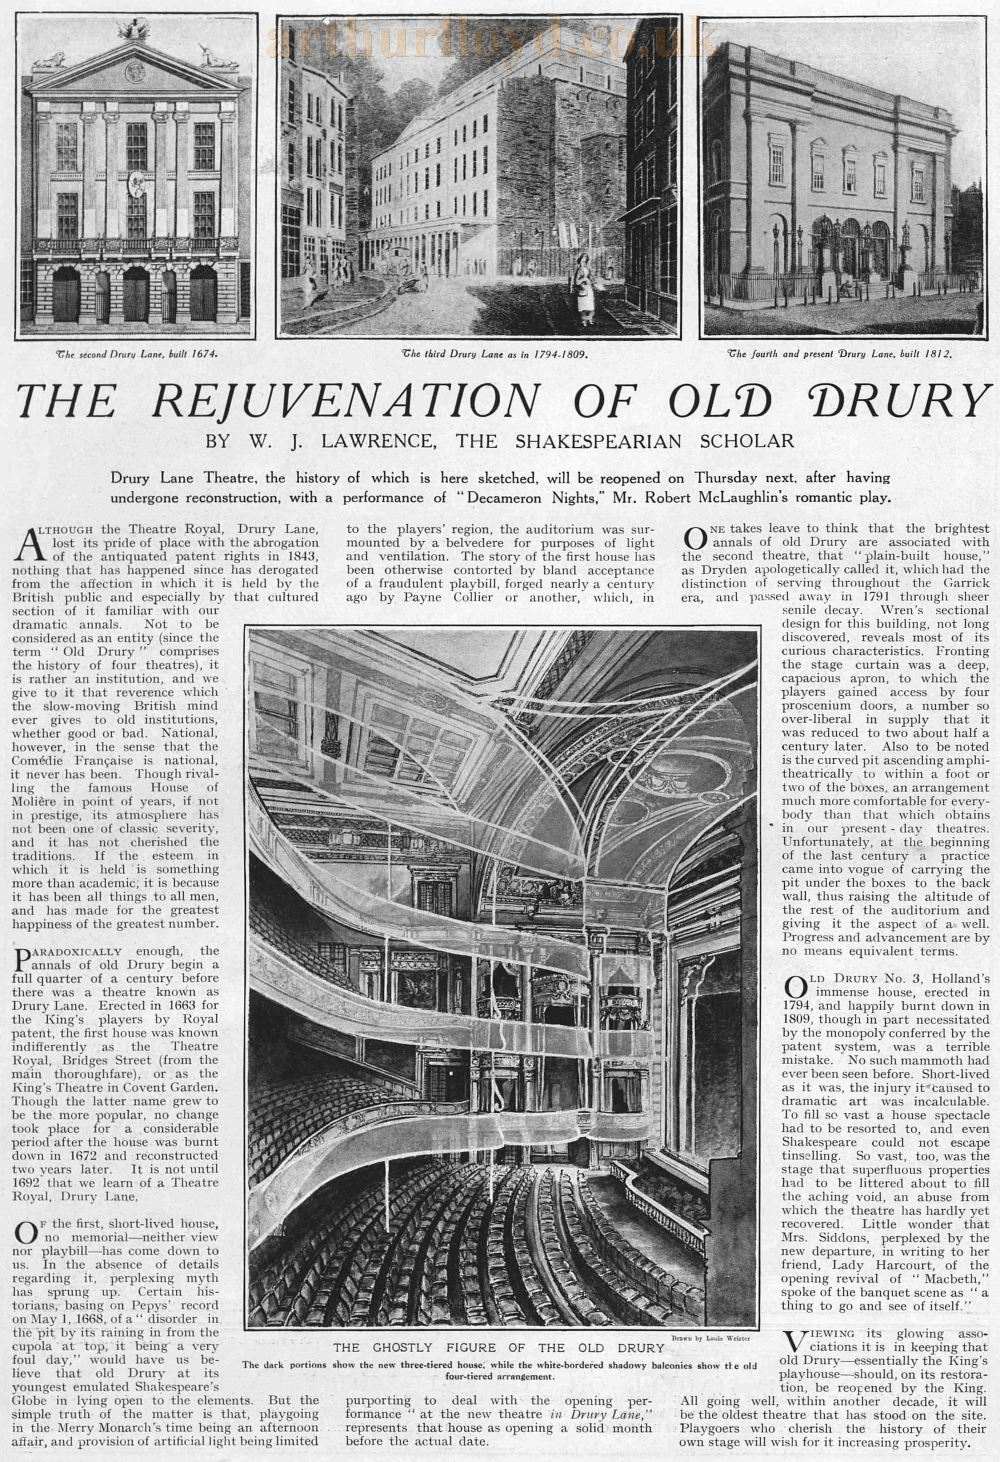 The Rejuvenation of Old Drury - From The Graphic, April 15th, 1922.